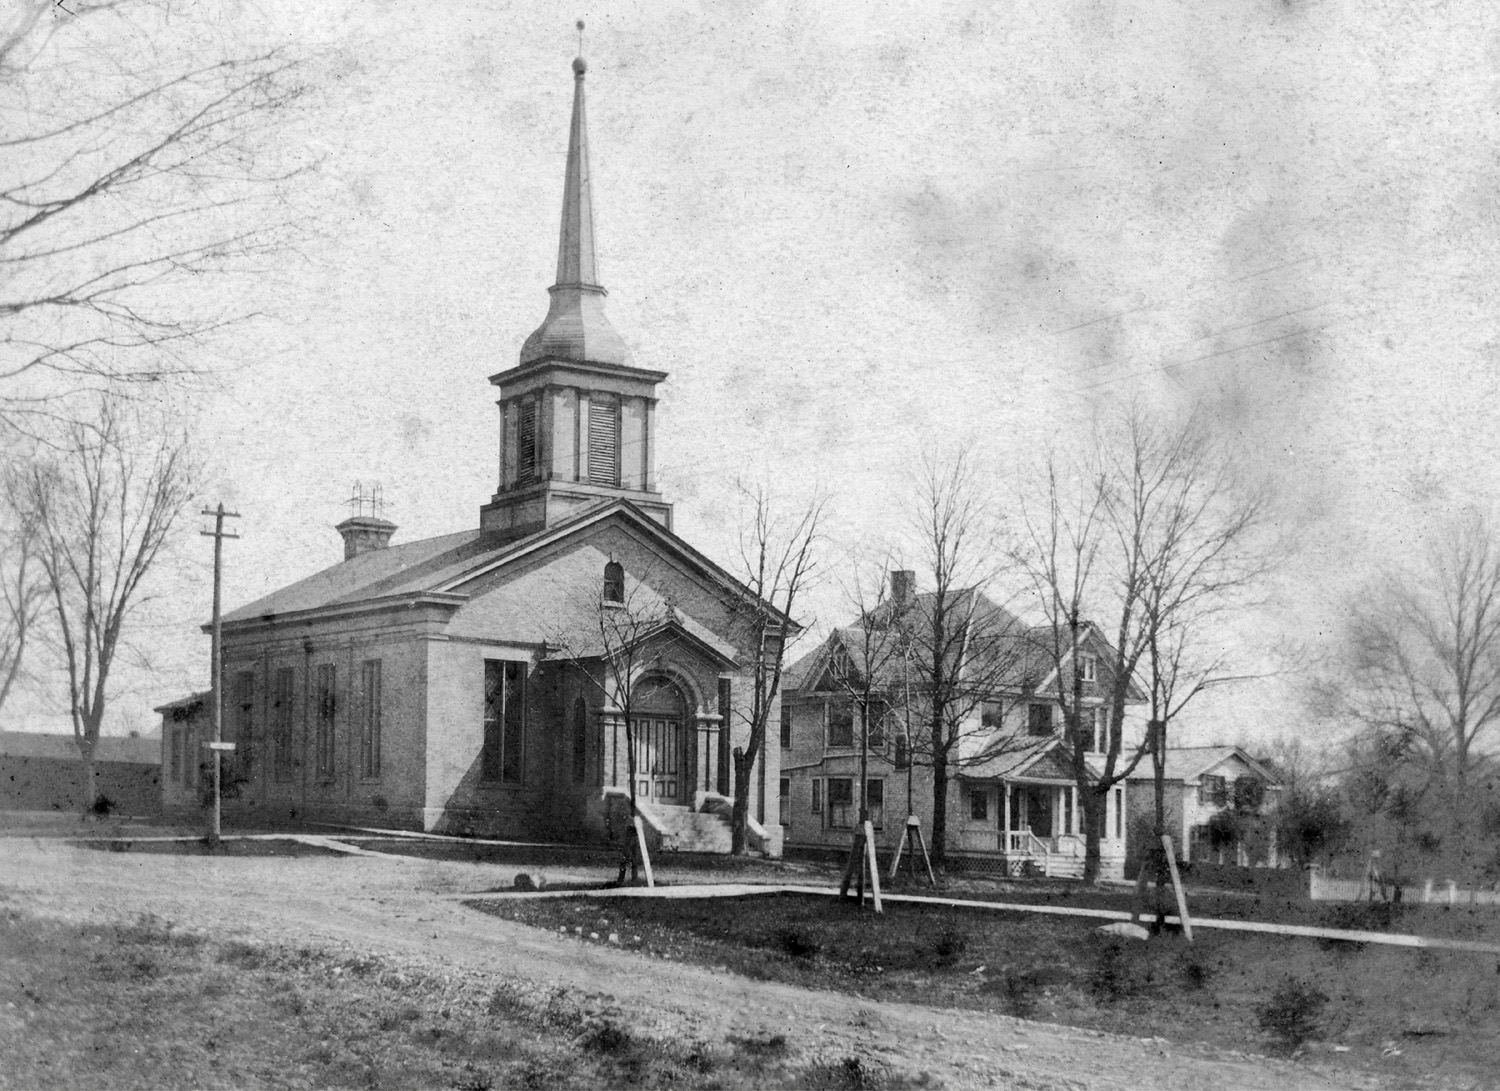 1900 Congregational Church